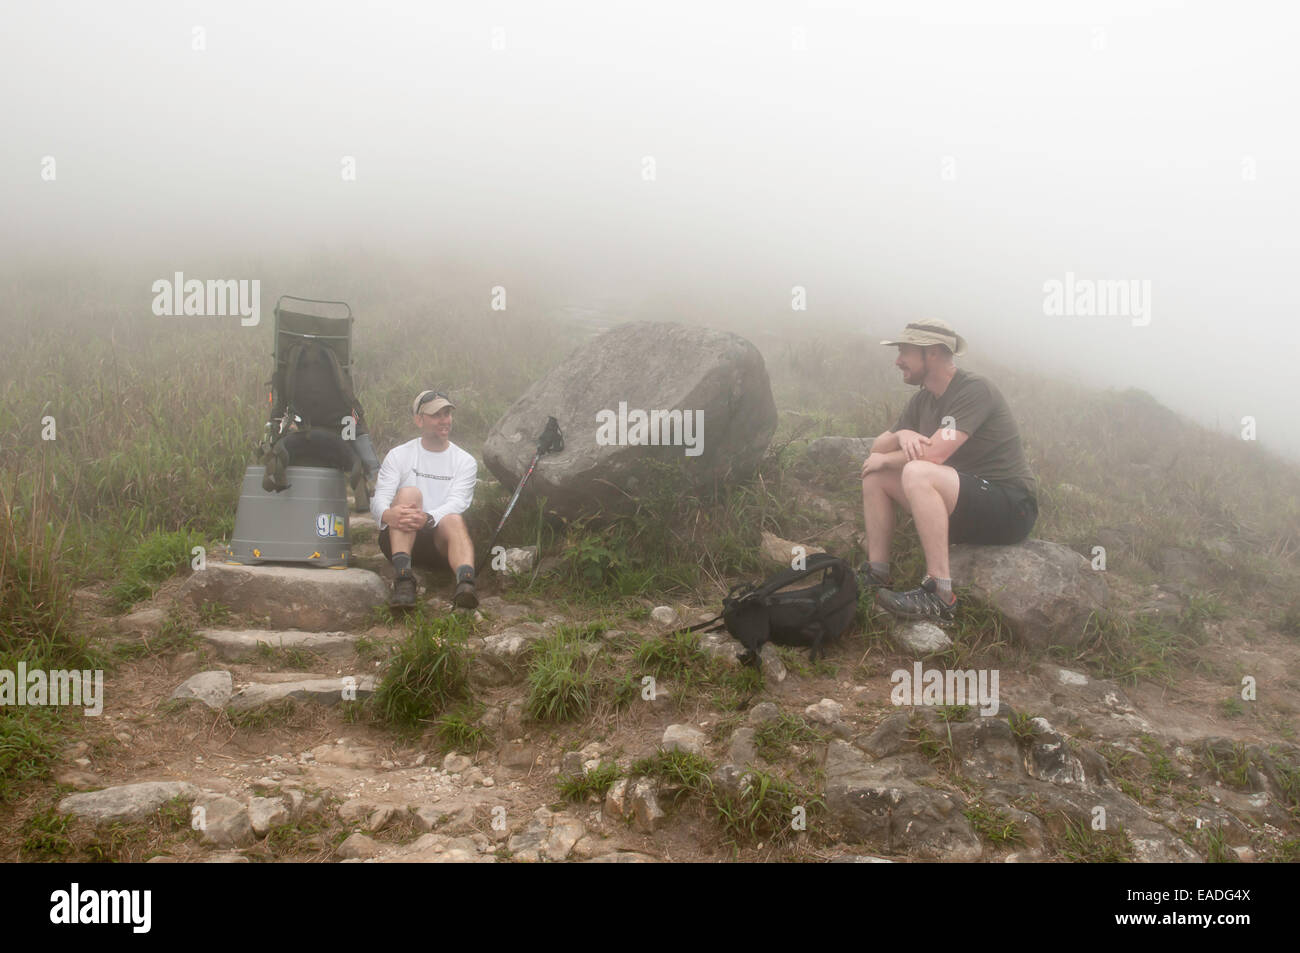 Hikers take a break on the way up to Sunset Peak, Tai Tung Shan, located on Lantau Island Hong Kong China - Stock Image